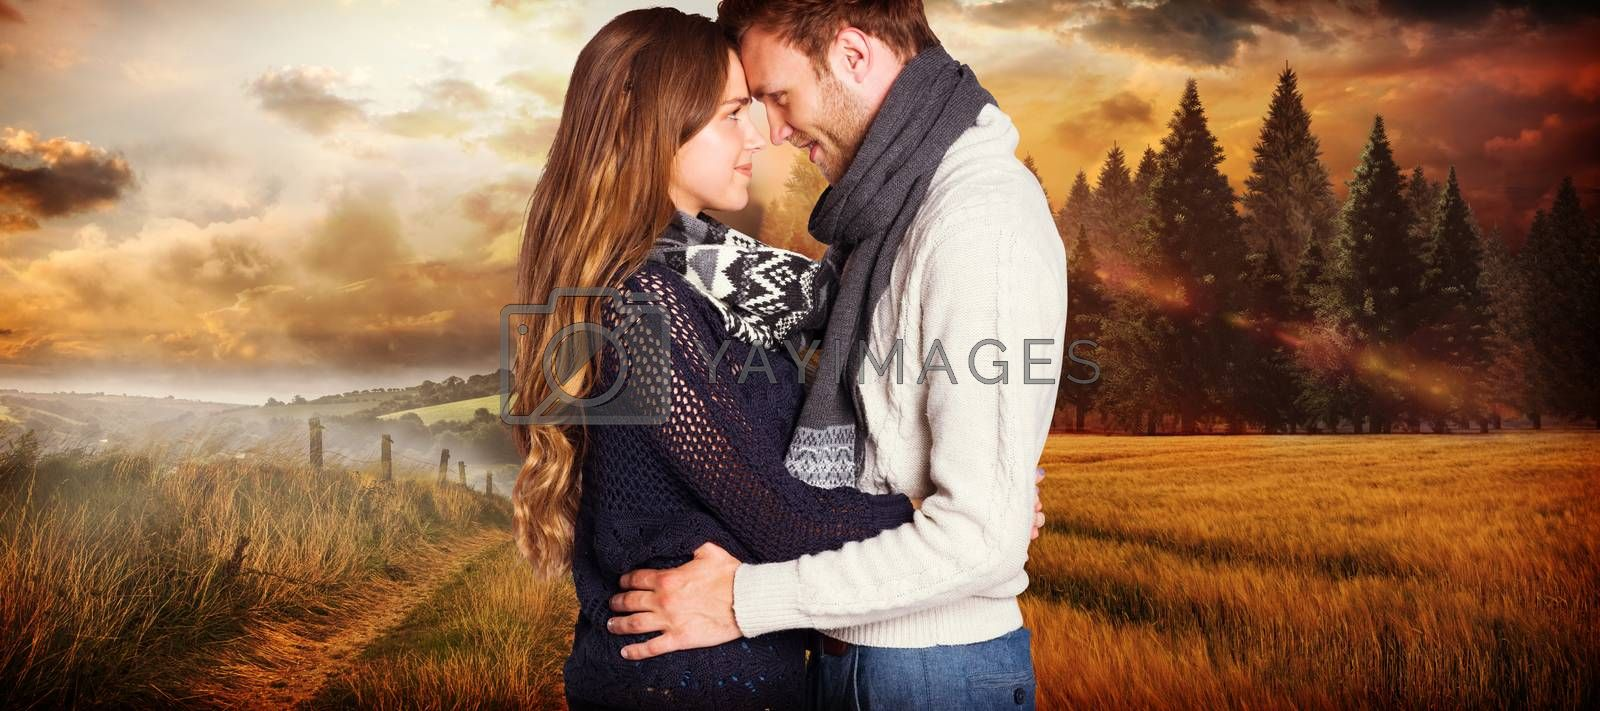 Side view of young couple embracing against country scene